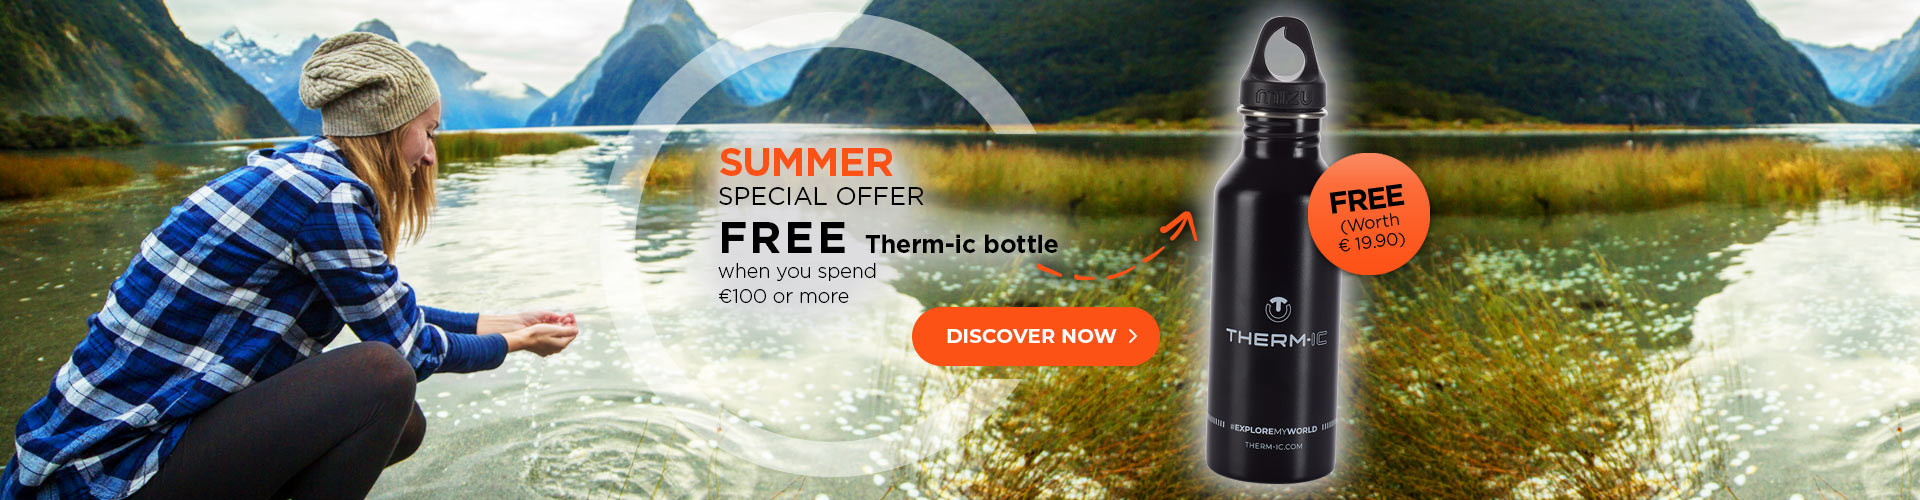 Get your free Water Bottle when you spend 100€ or more